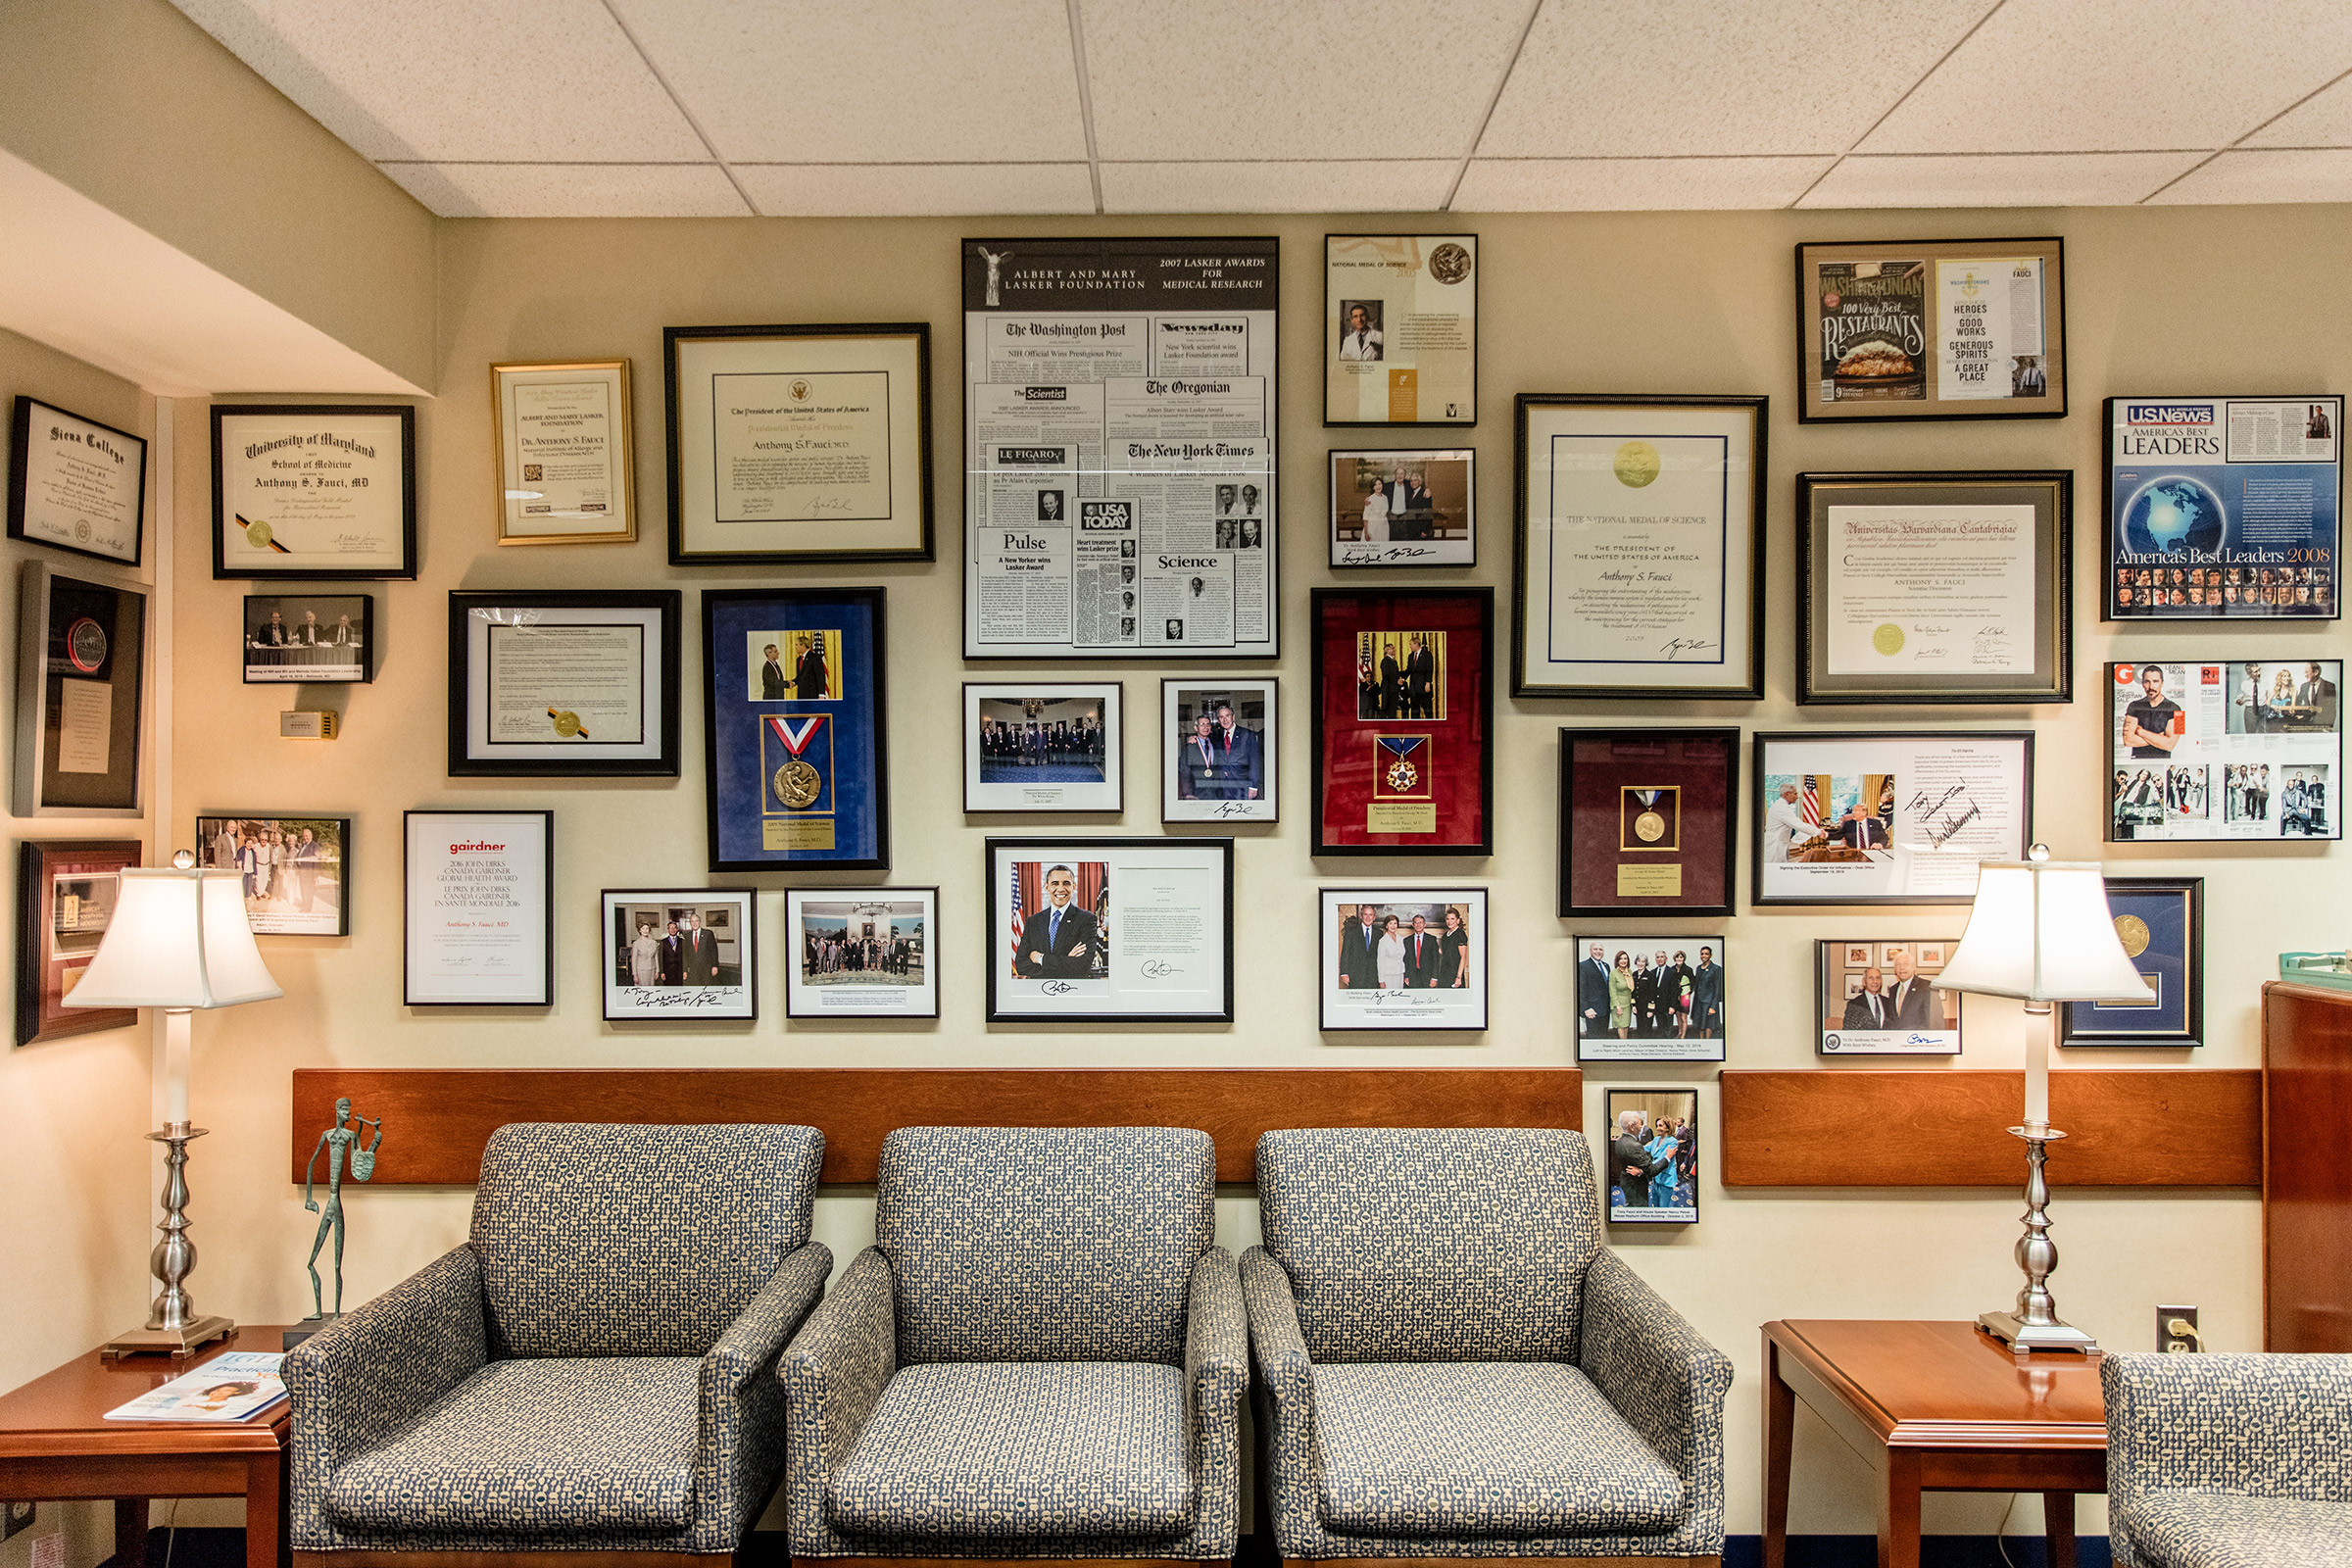 Fauci's office at the National Institutes of Health in Bethesda, Md., on Sept. 10, 2020.